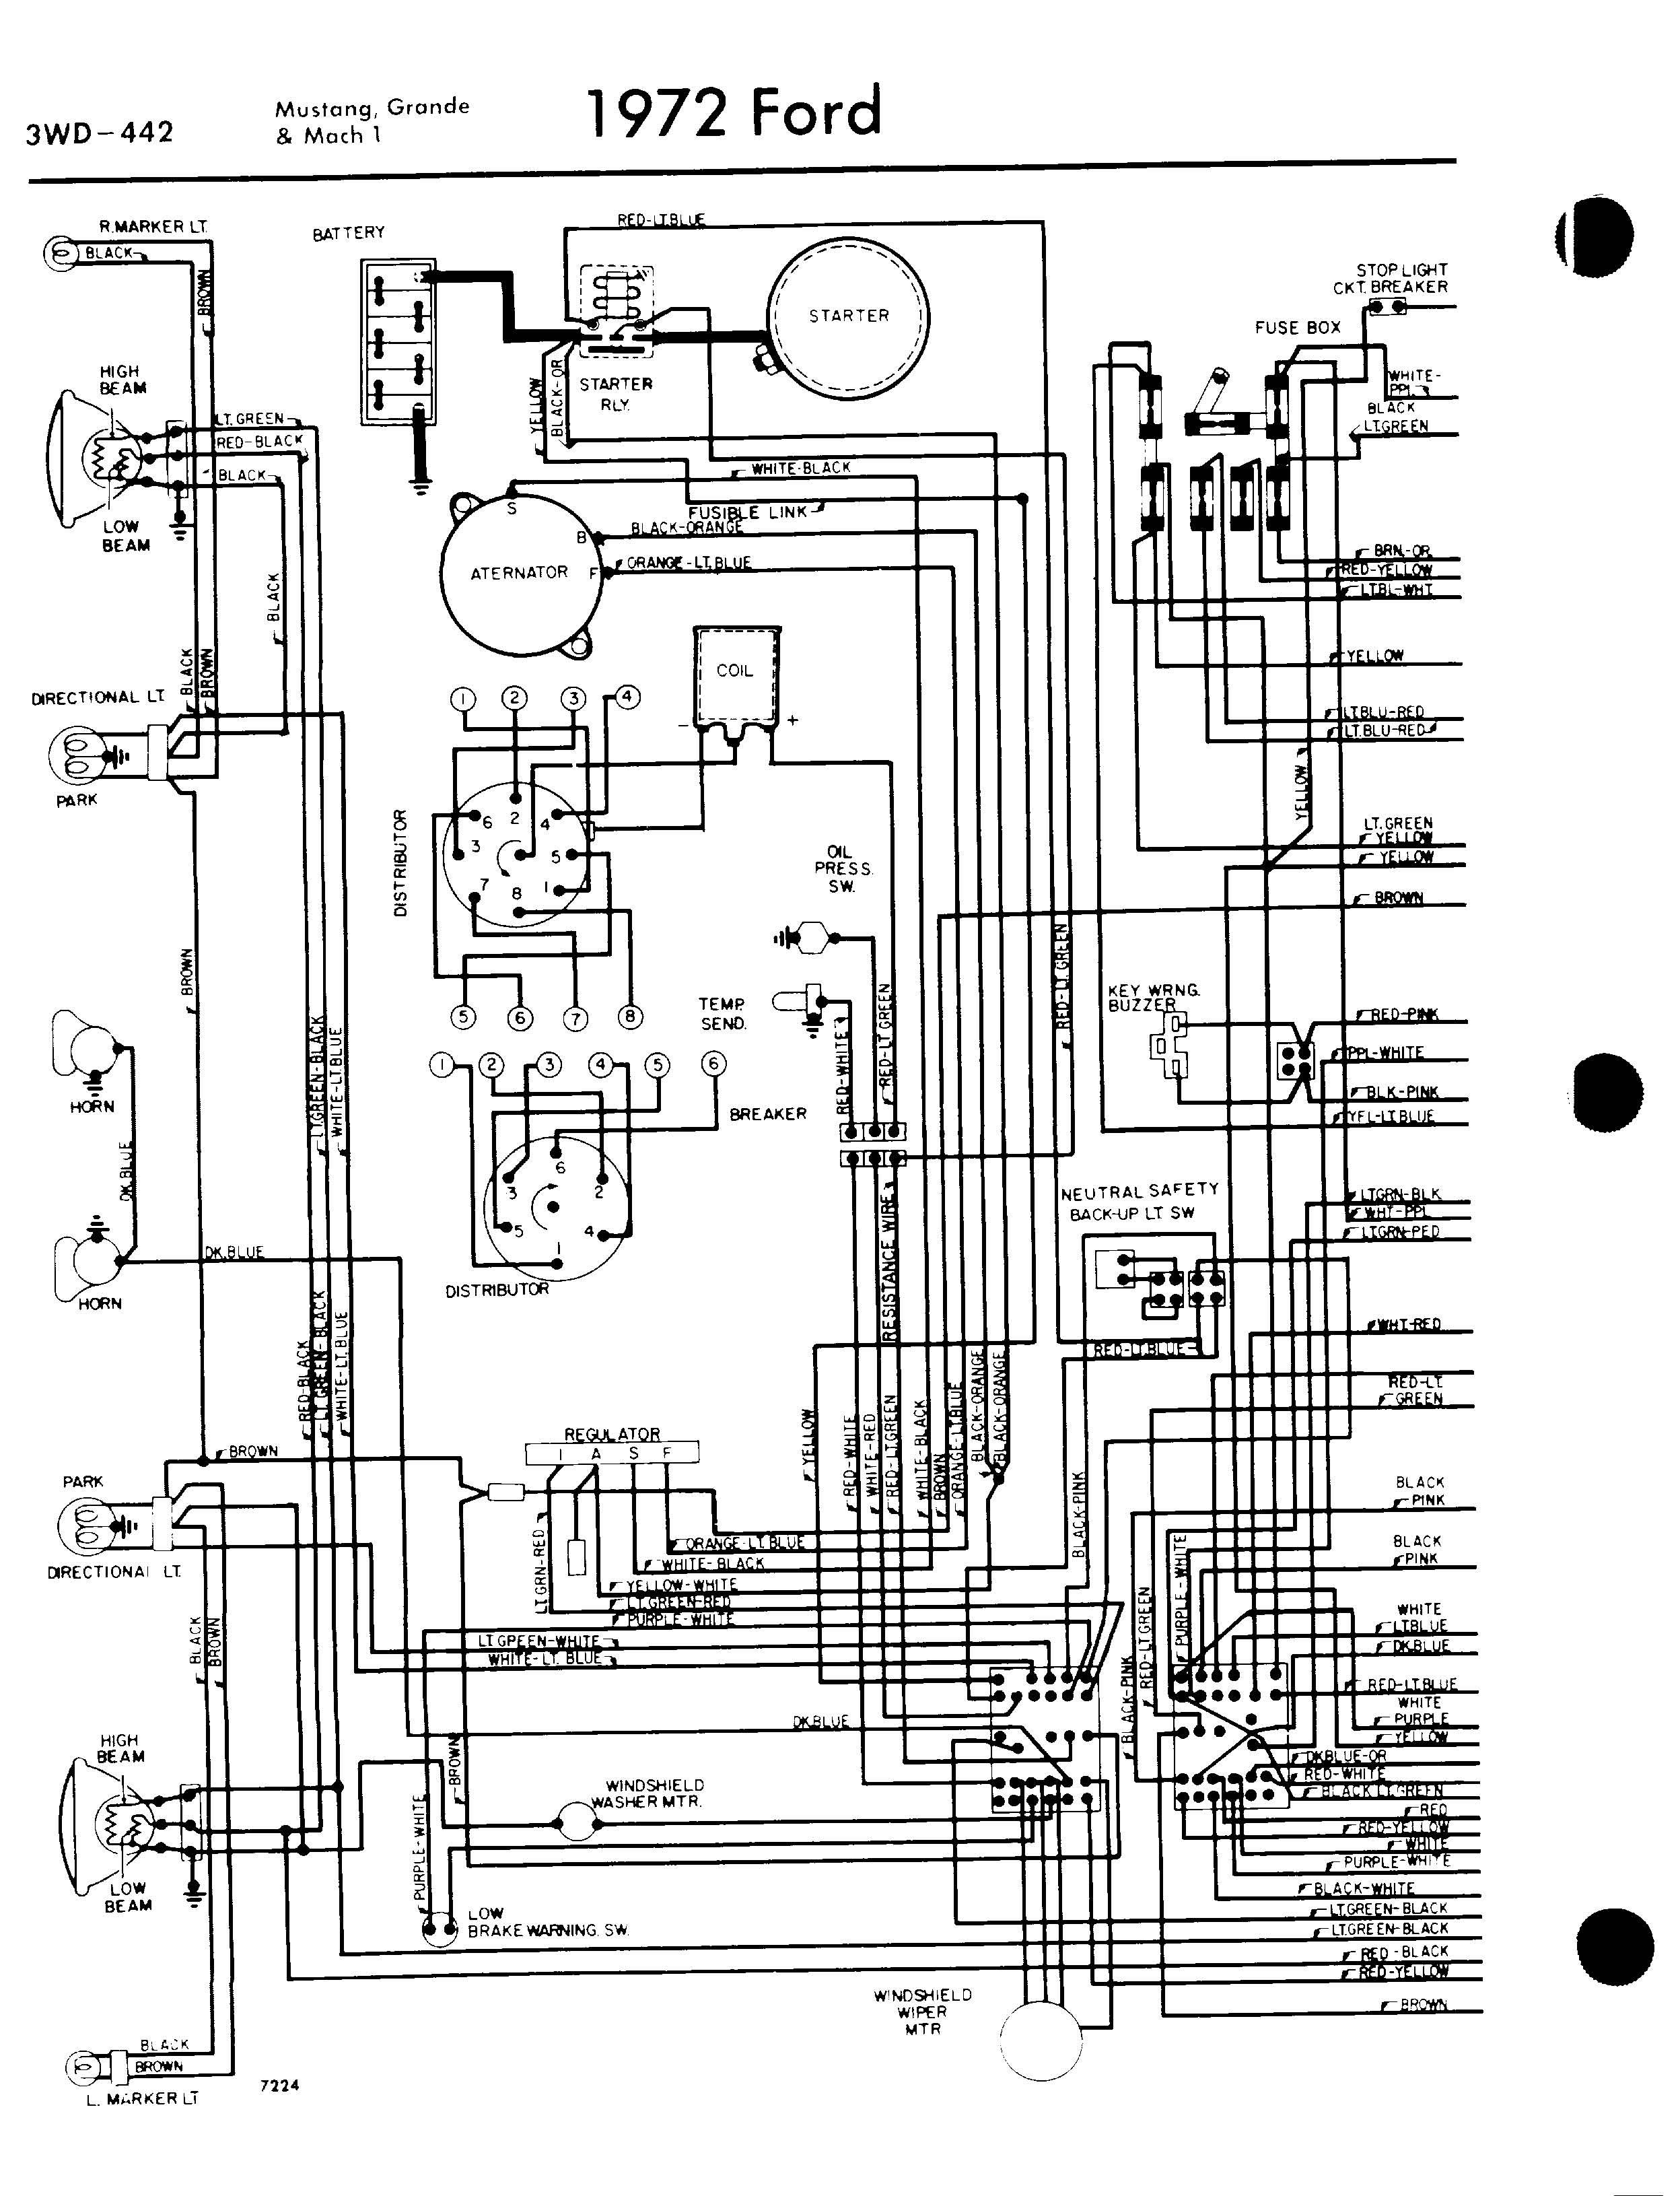 Wire Harness Diagrams Drawings